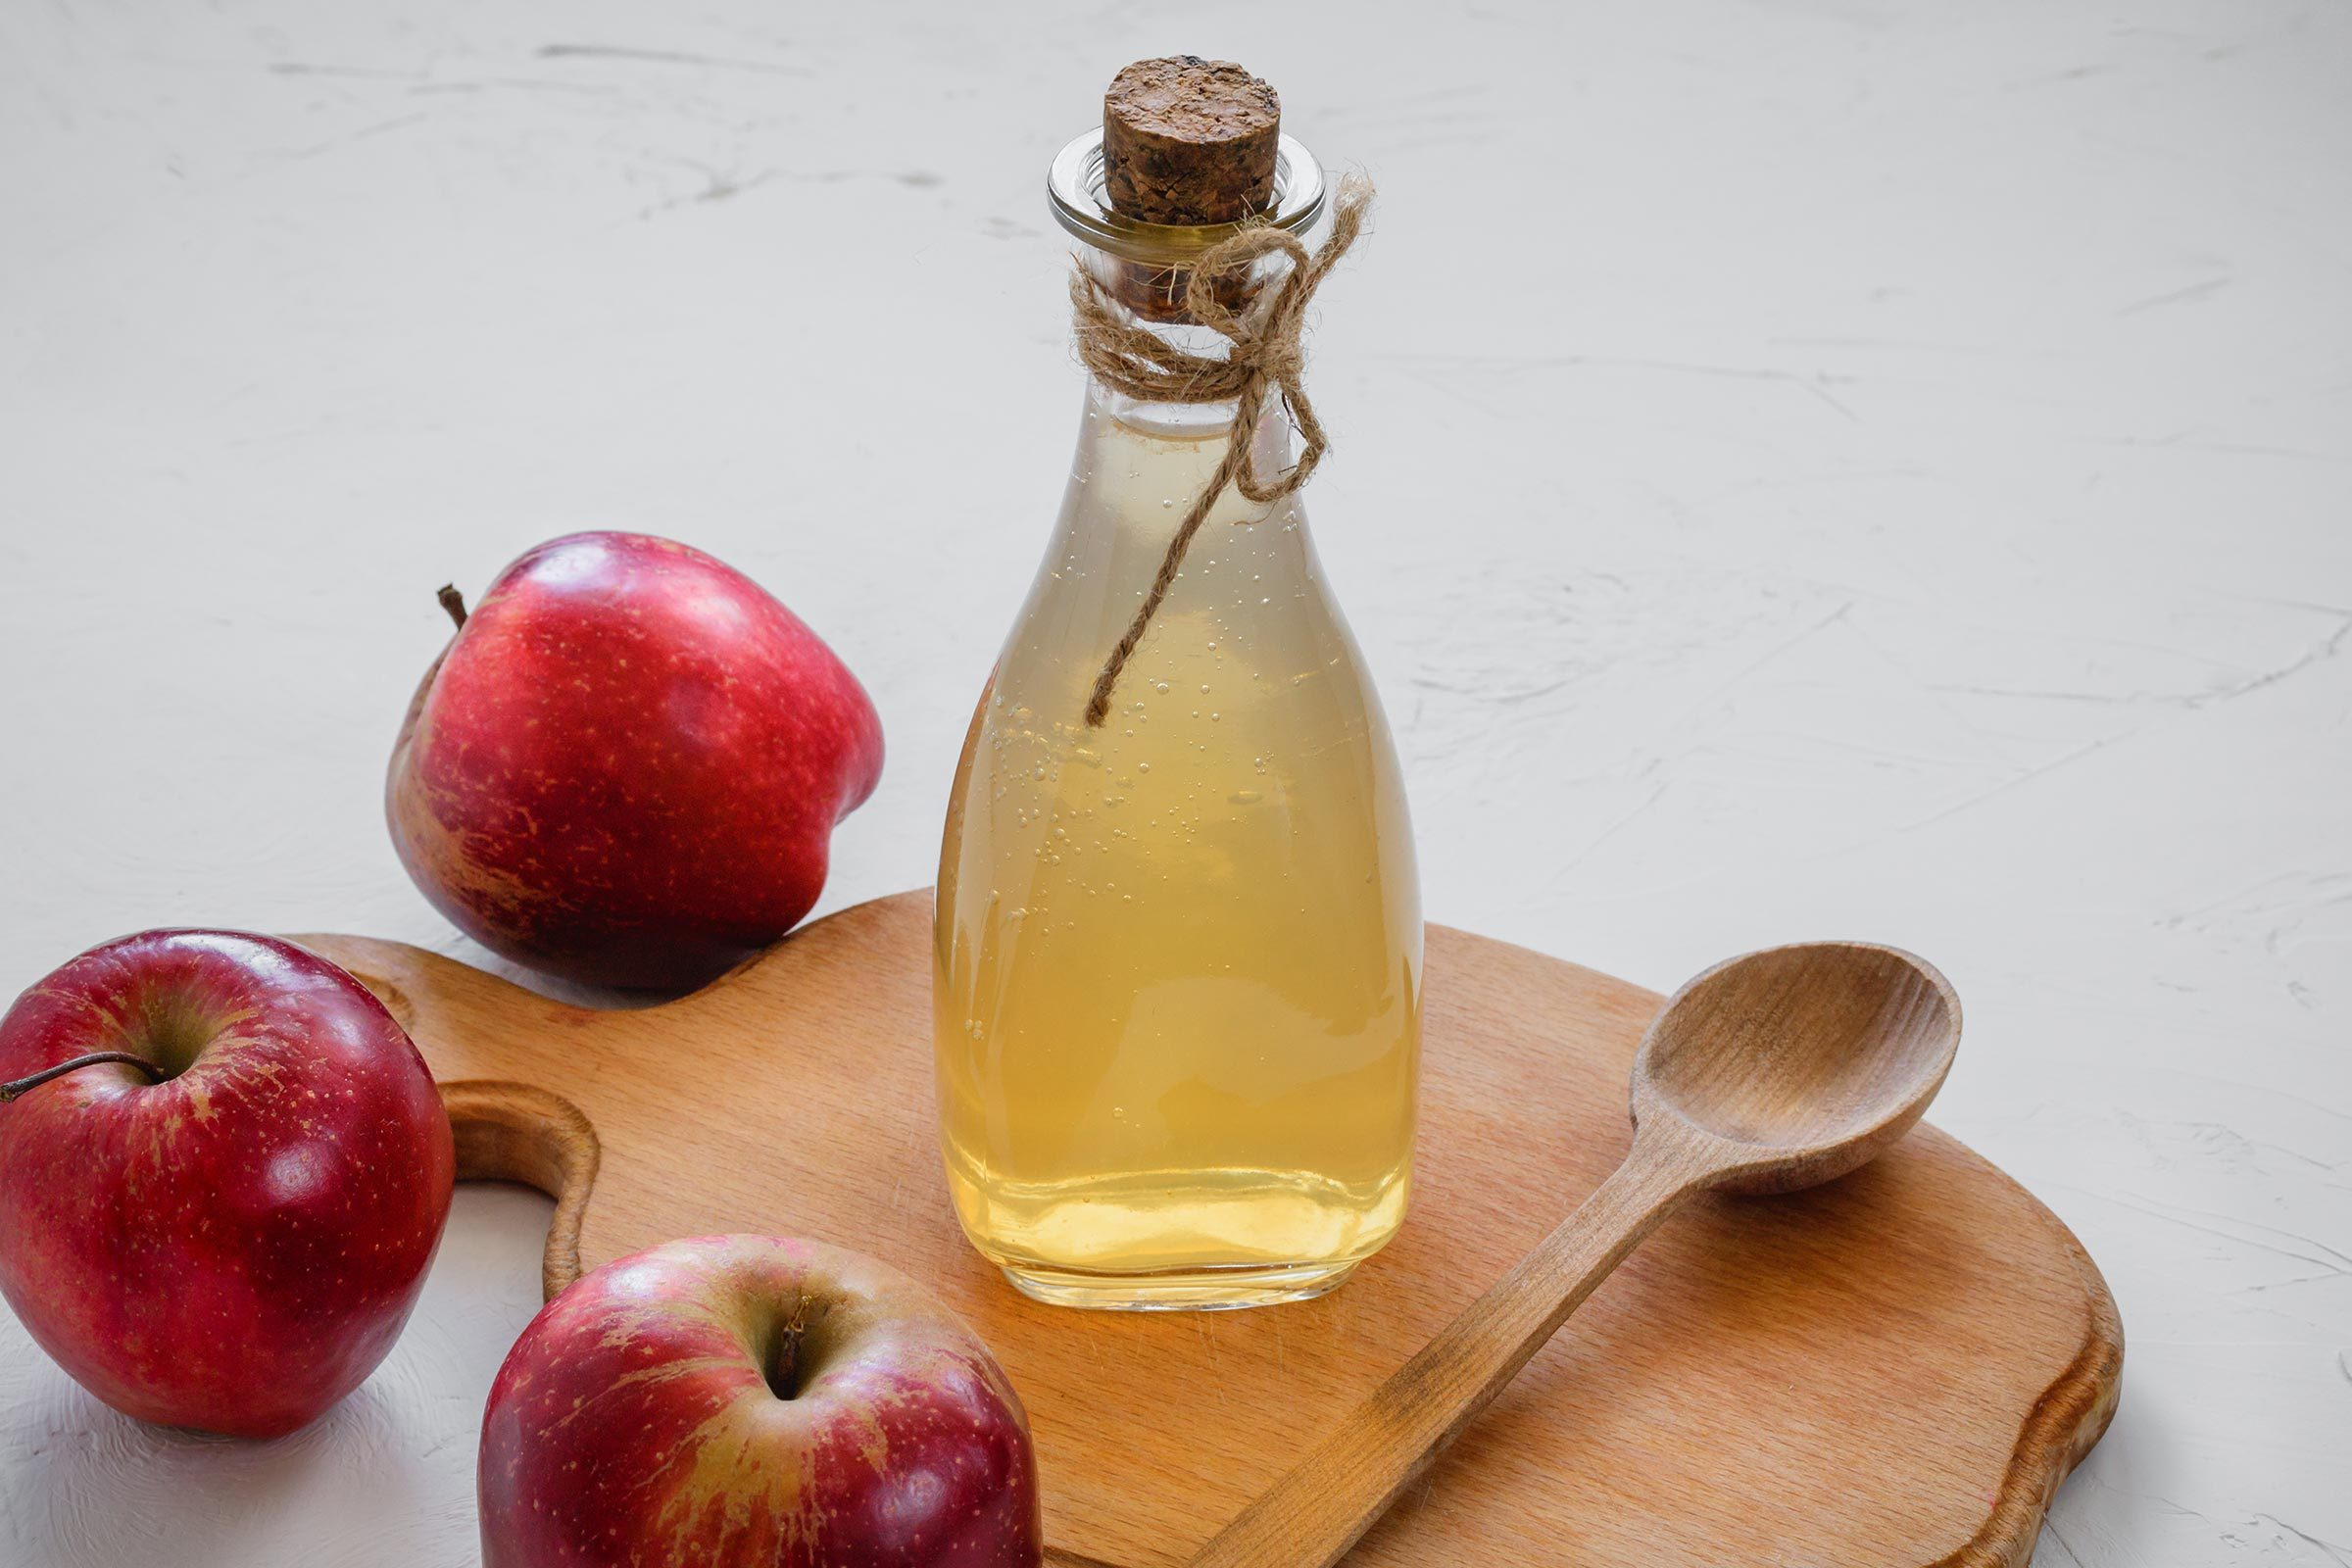 bottle of apple cider vinegar, spoon, and apples